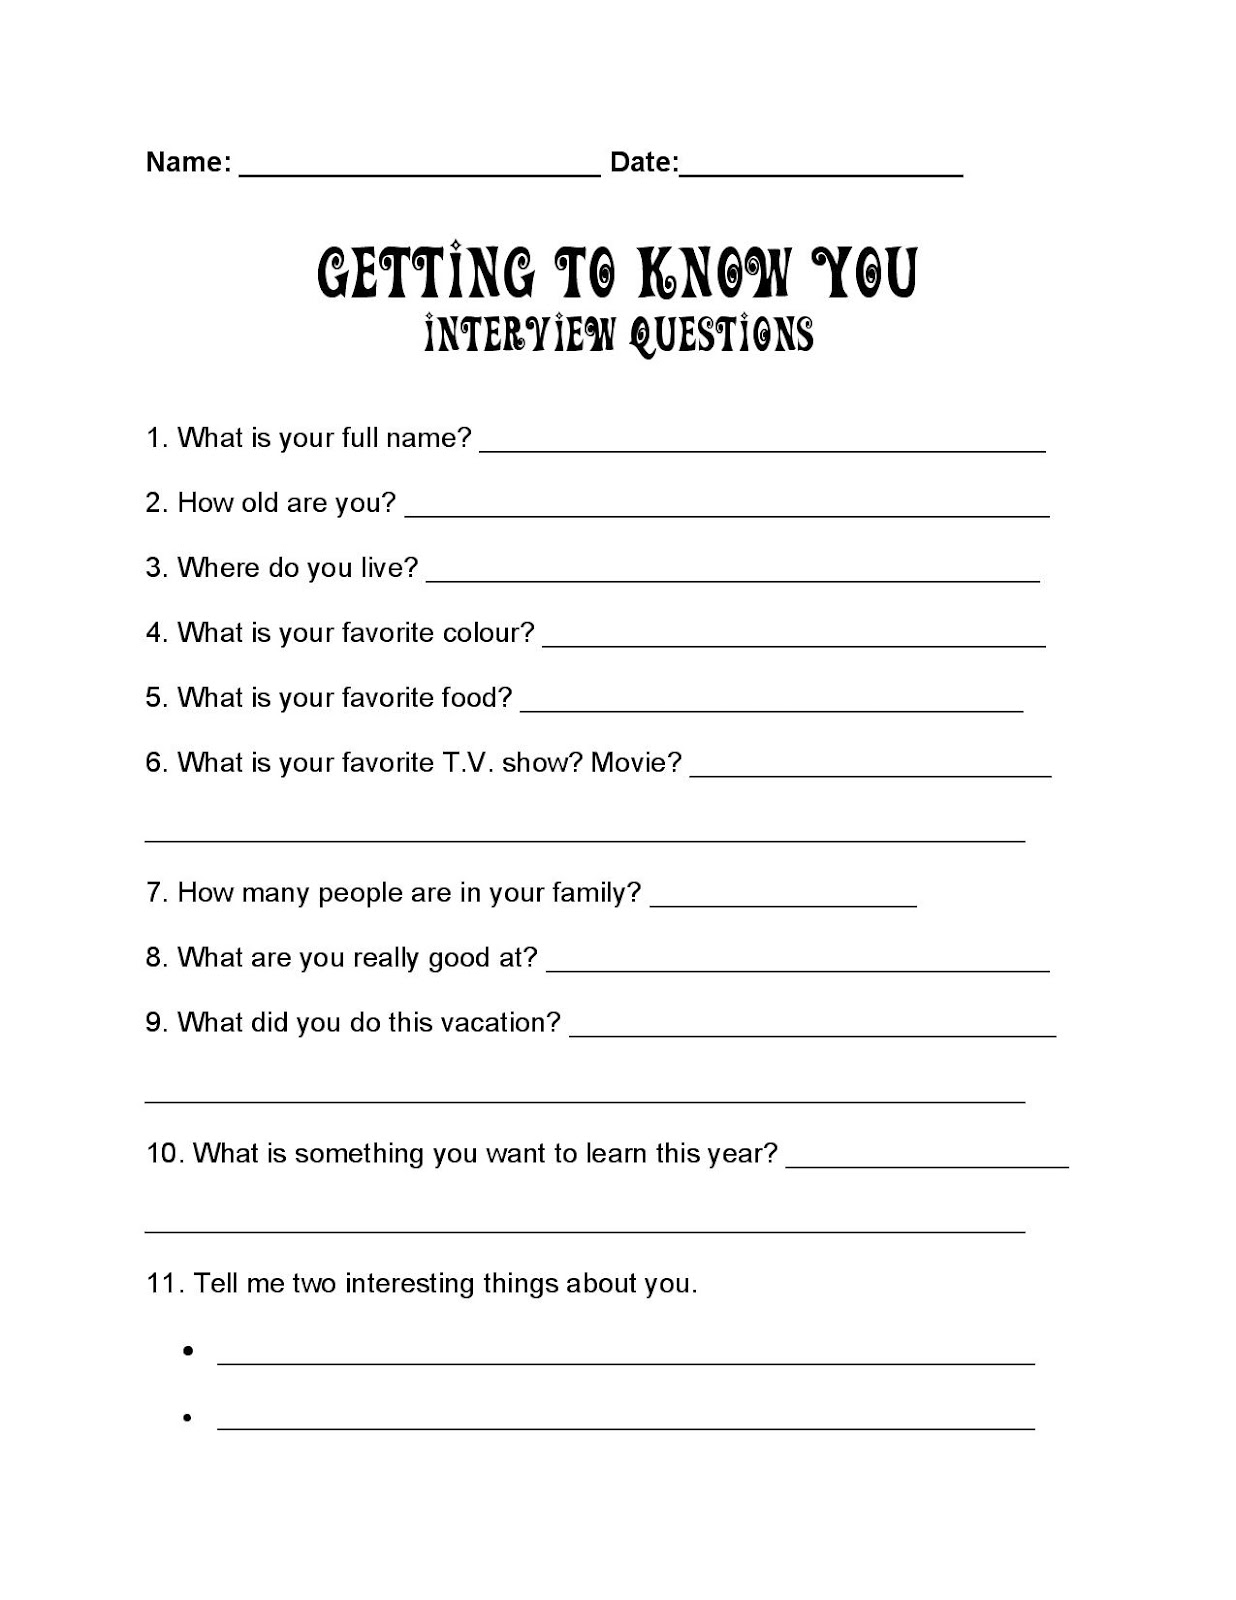 ESL Candy Learning about each other – Getting to Know You Worksheet